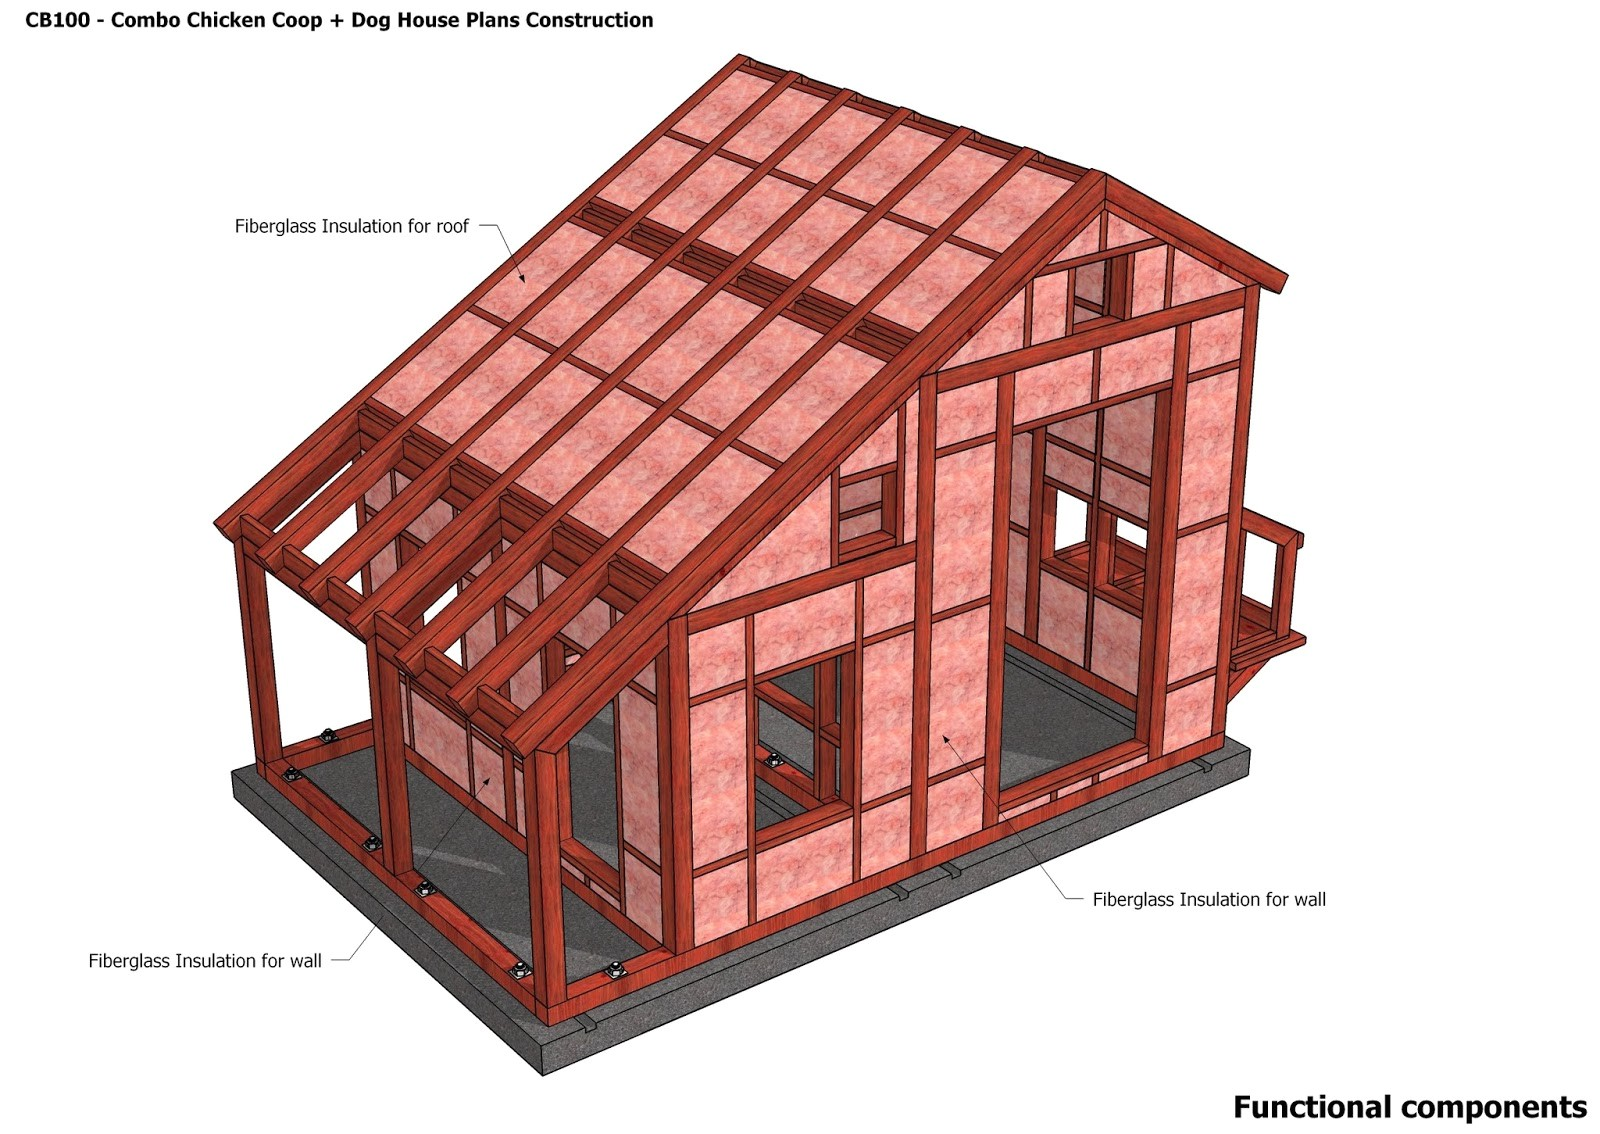 dog house construction plans